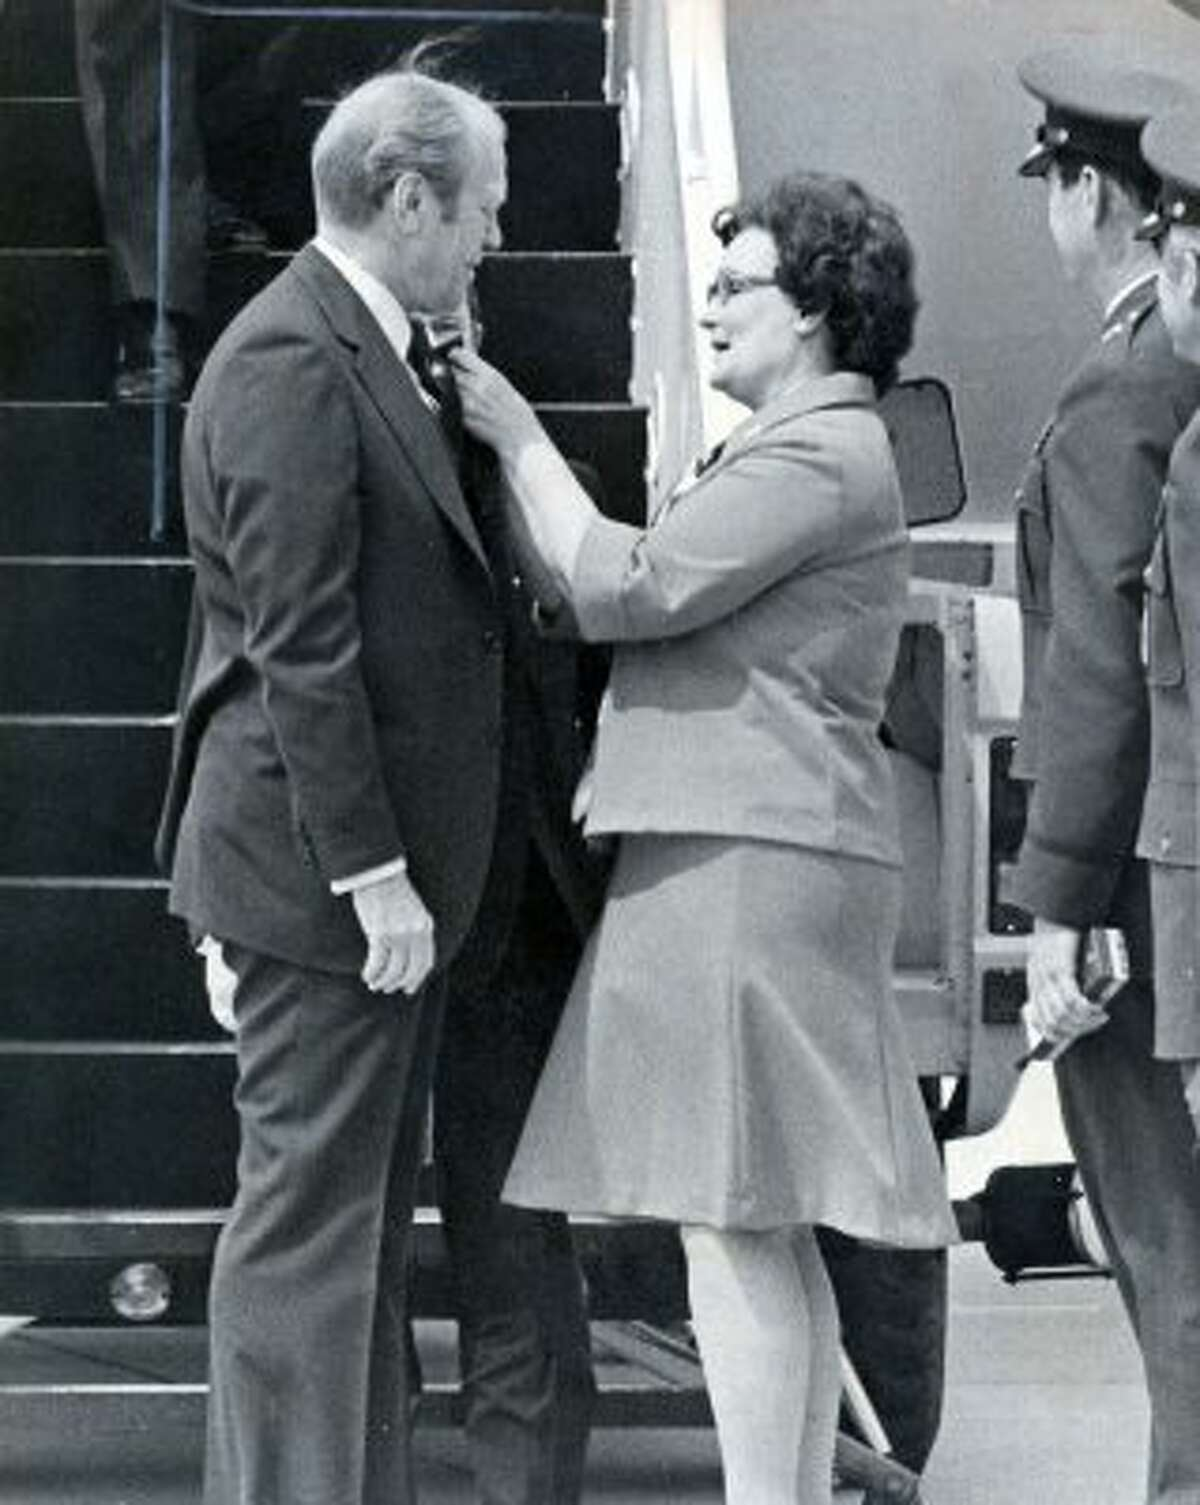 Former U.S. President Gerald Ford being greeted as he exits the plan by former Mayor of San Antonio, Lila Cockrell, April 9, 1976.